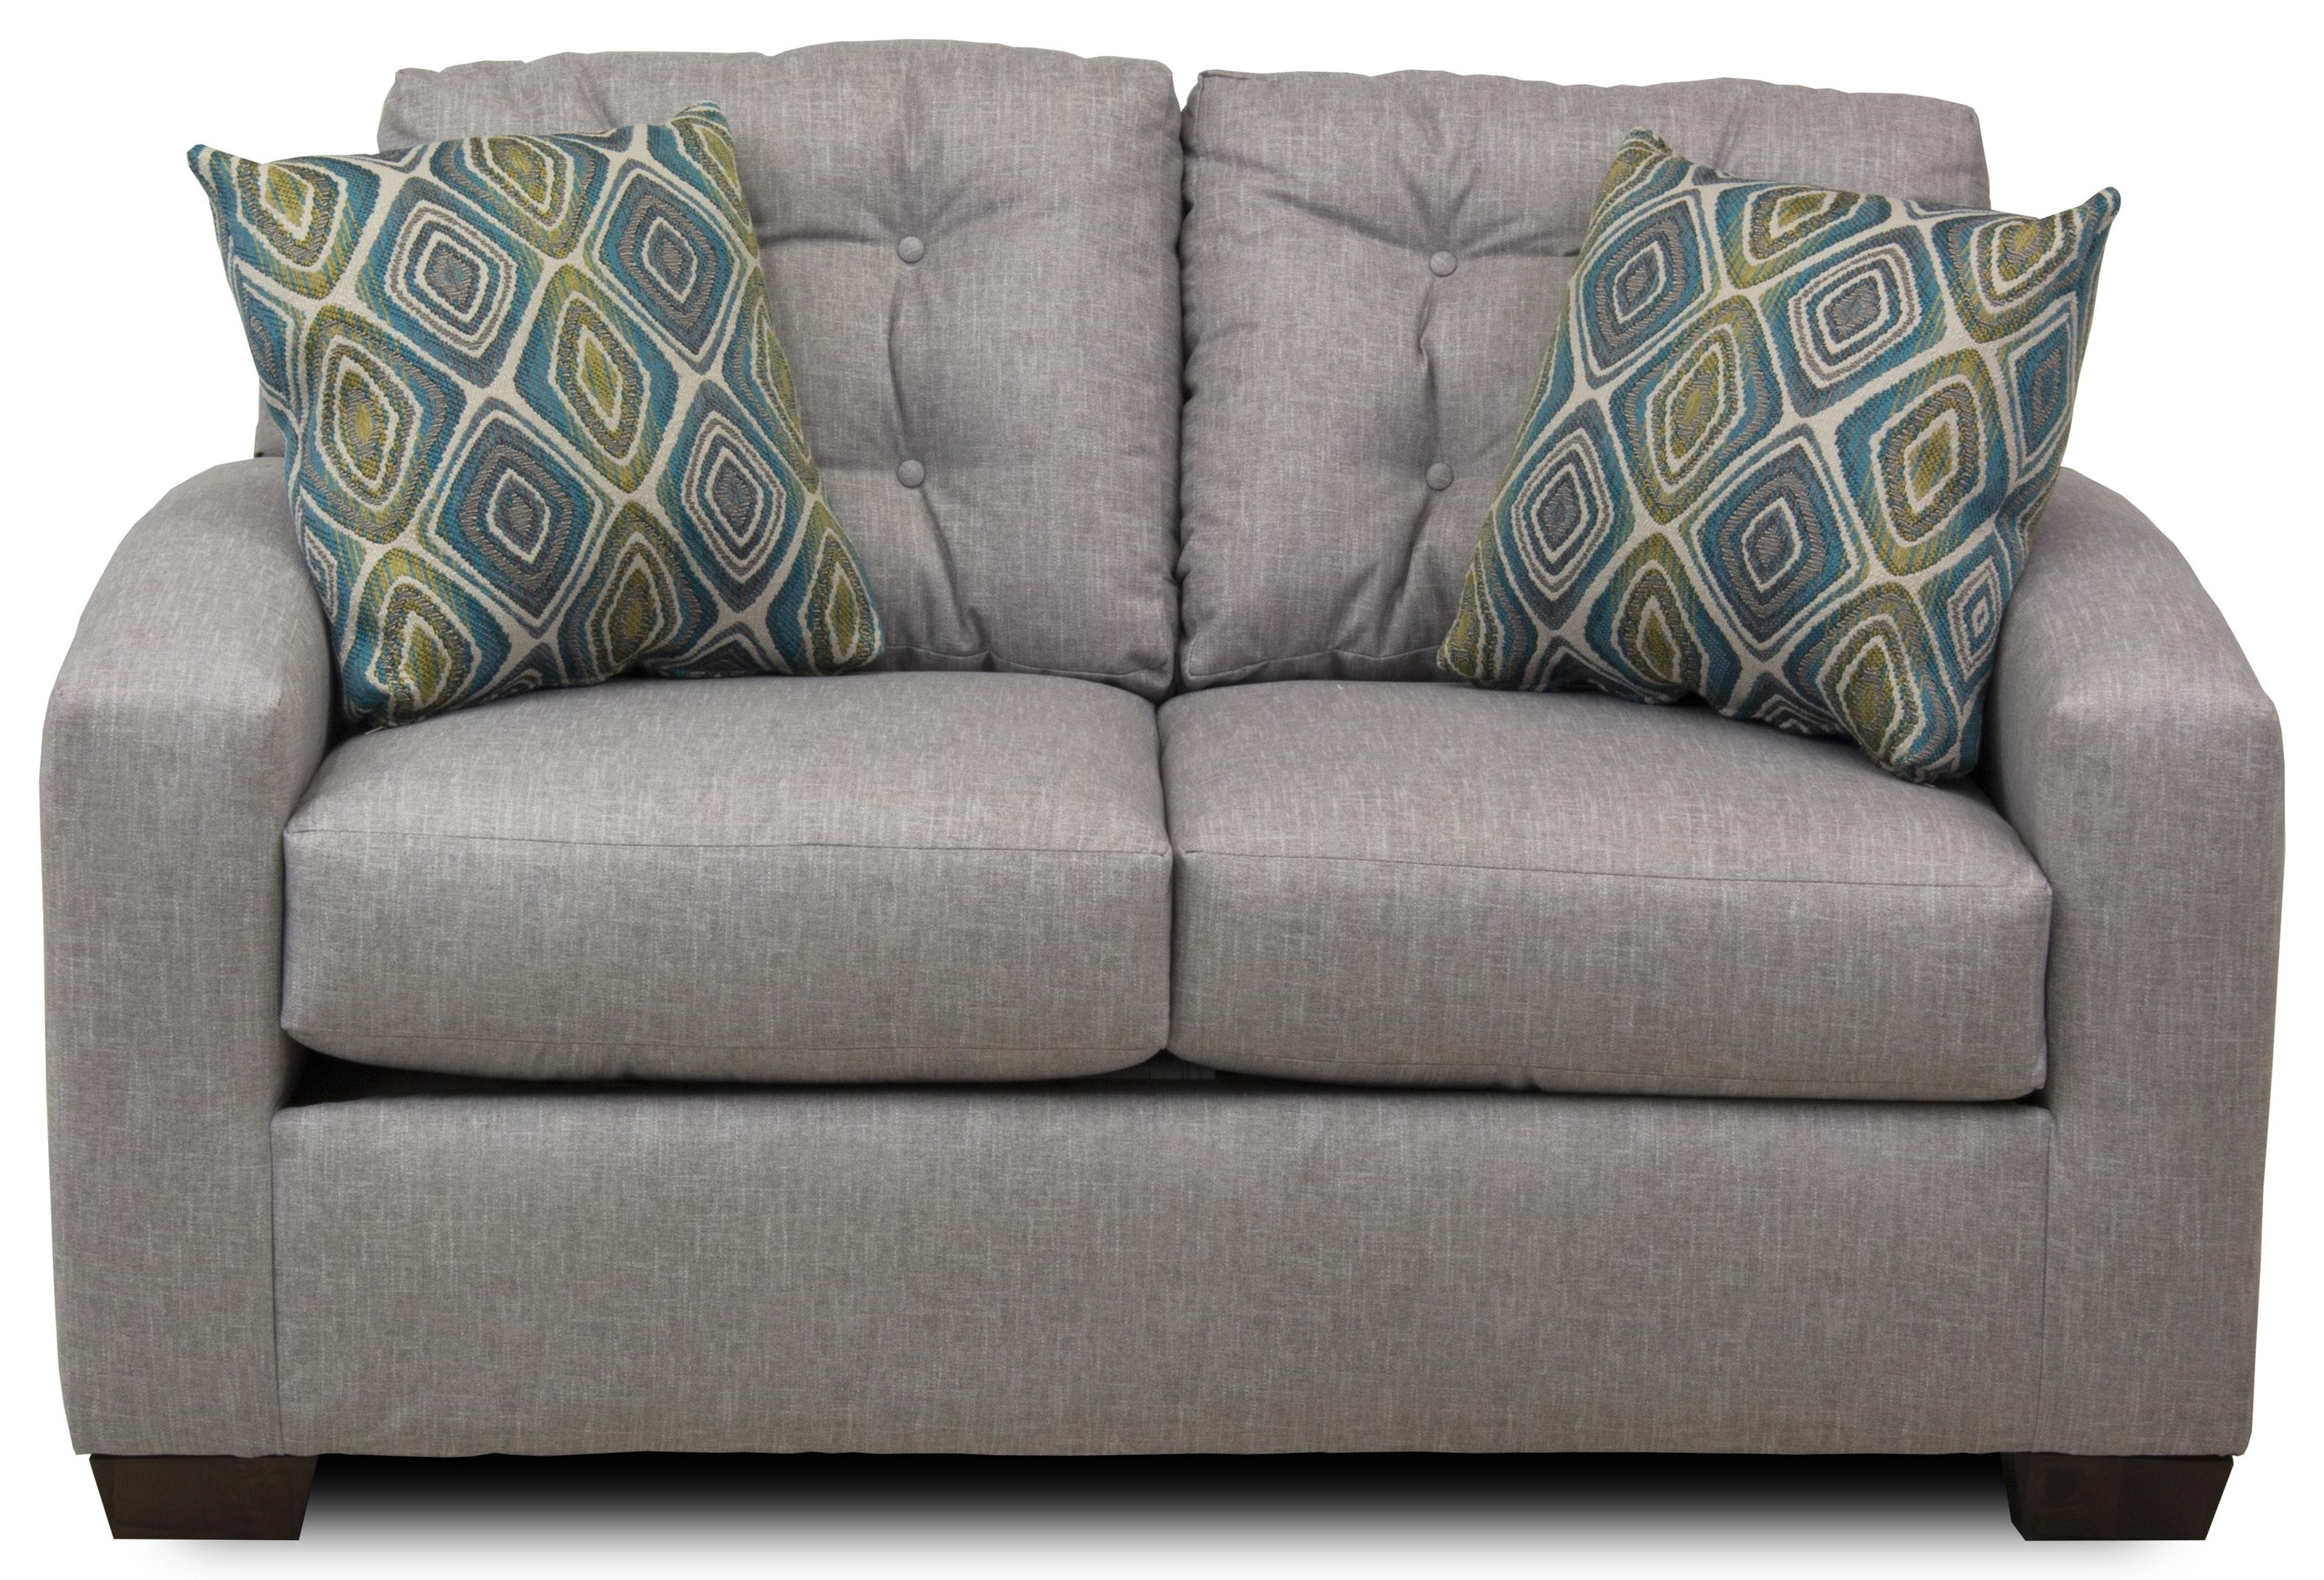 Contemporary Loveseat with Tufted Back Cushions